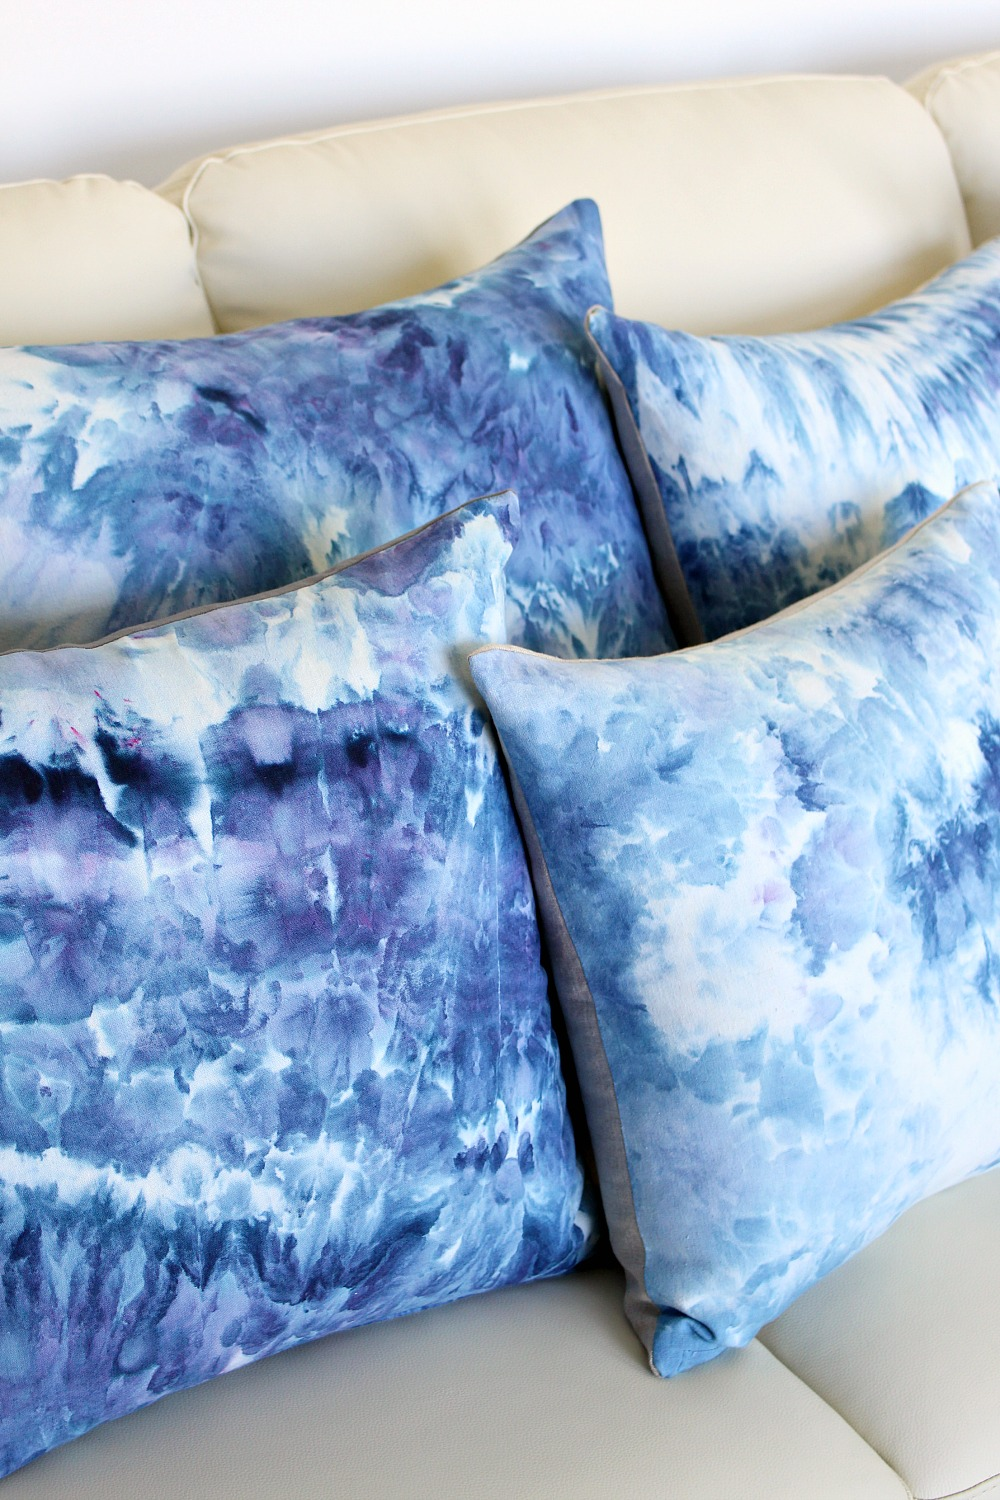 DIY Ice Dye Pillows | @danslelakehouse